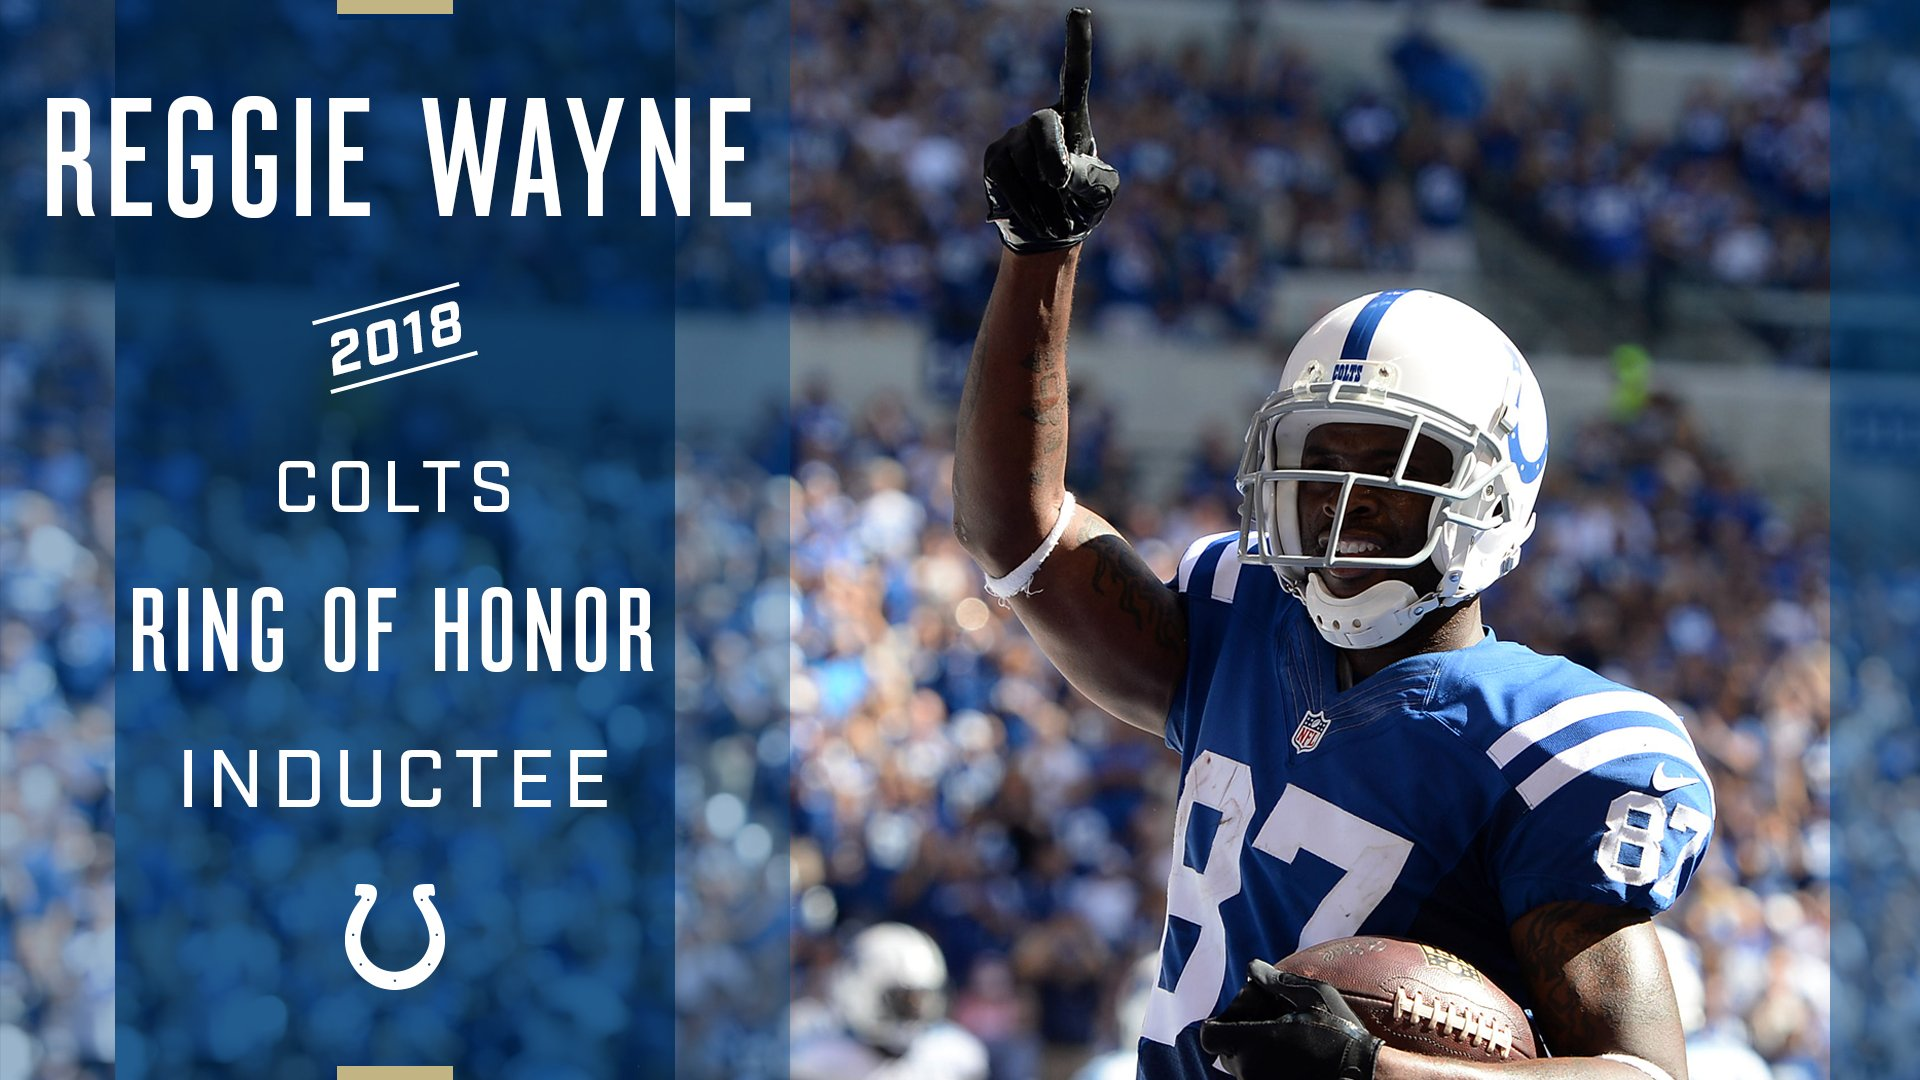 Congrats @ReggieWayne_17!   87 is going into the Colts Ring of Honor: https://t.co/kZn9qBrM9S https://t.co/6lHS2BFw5N